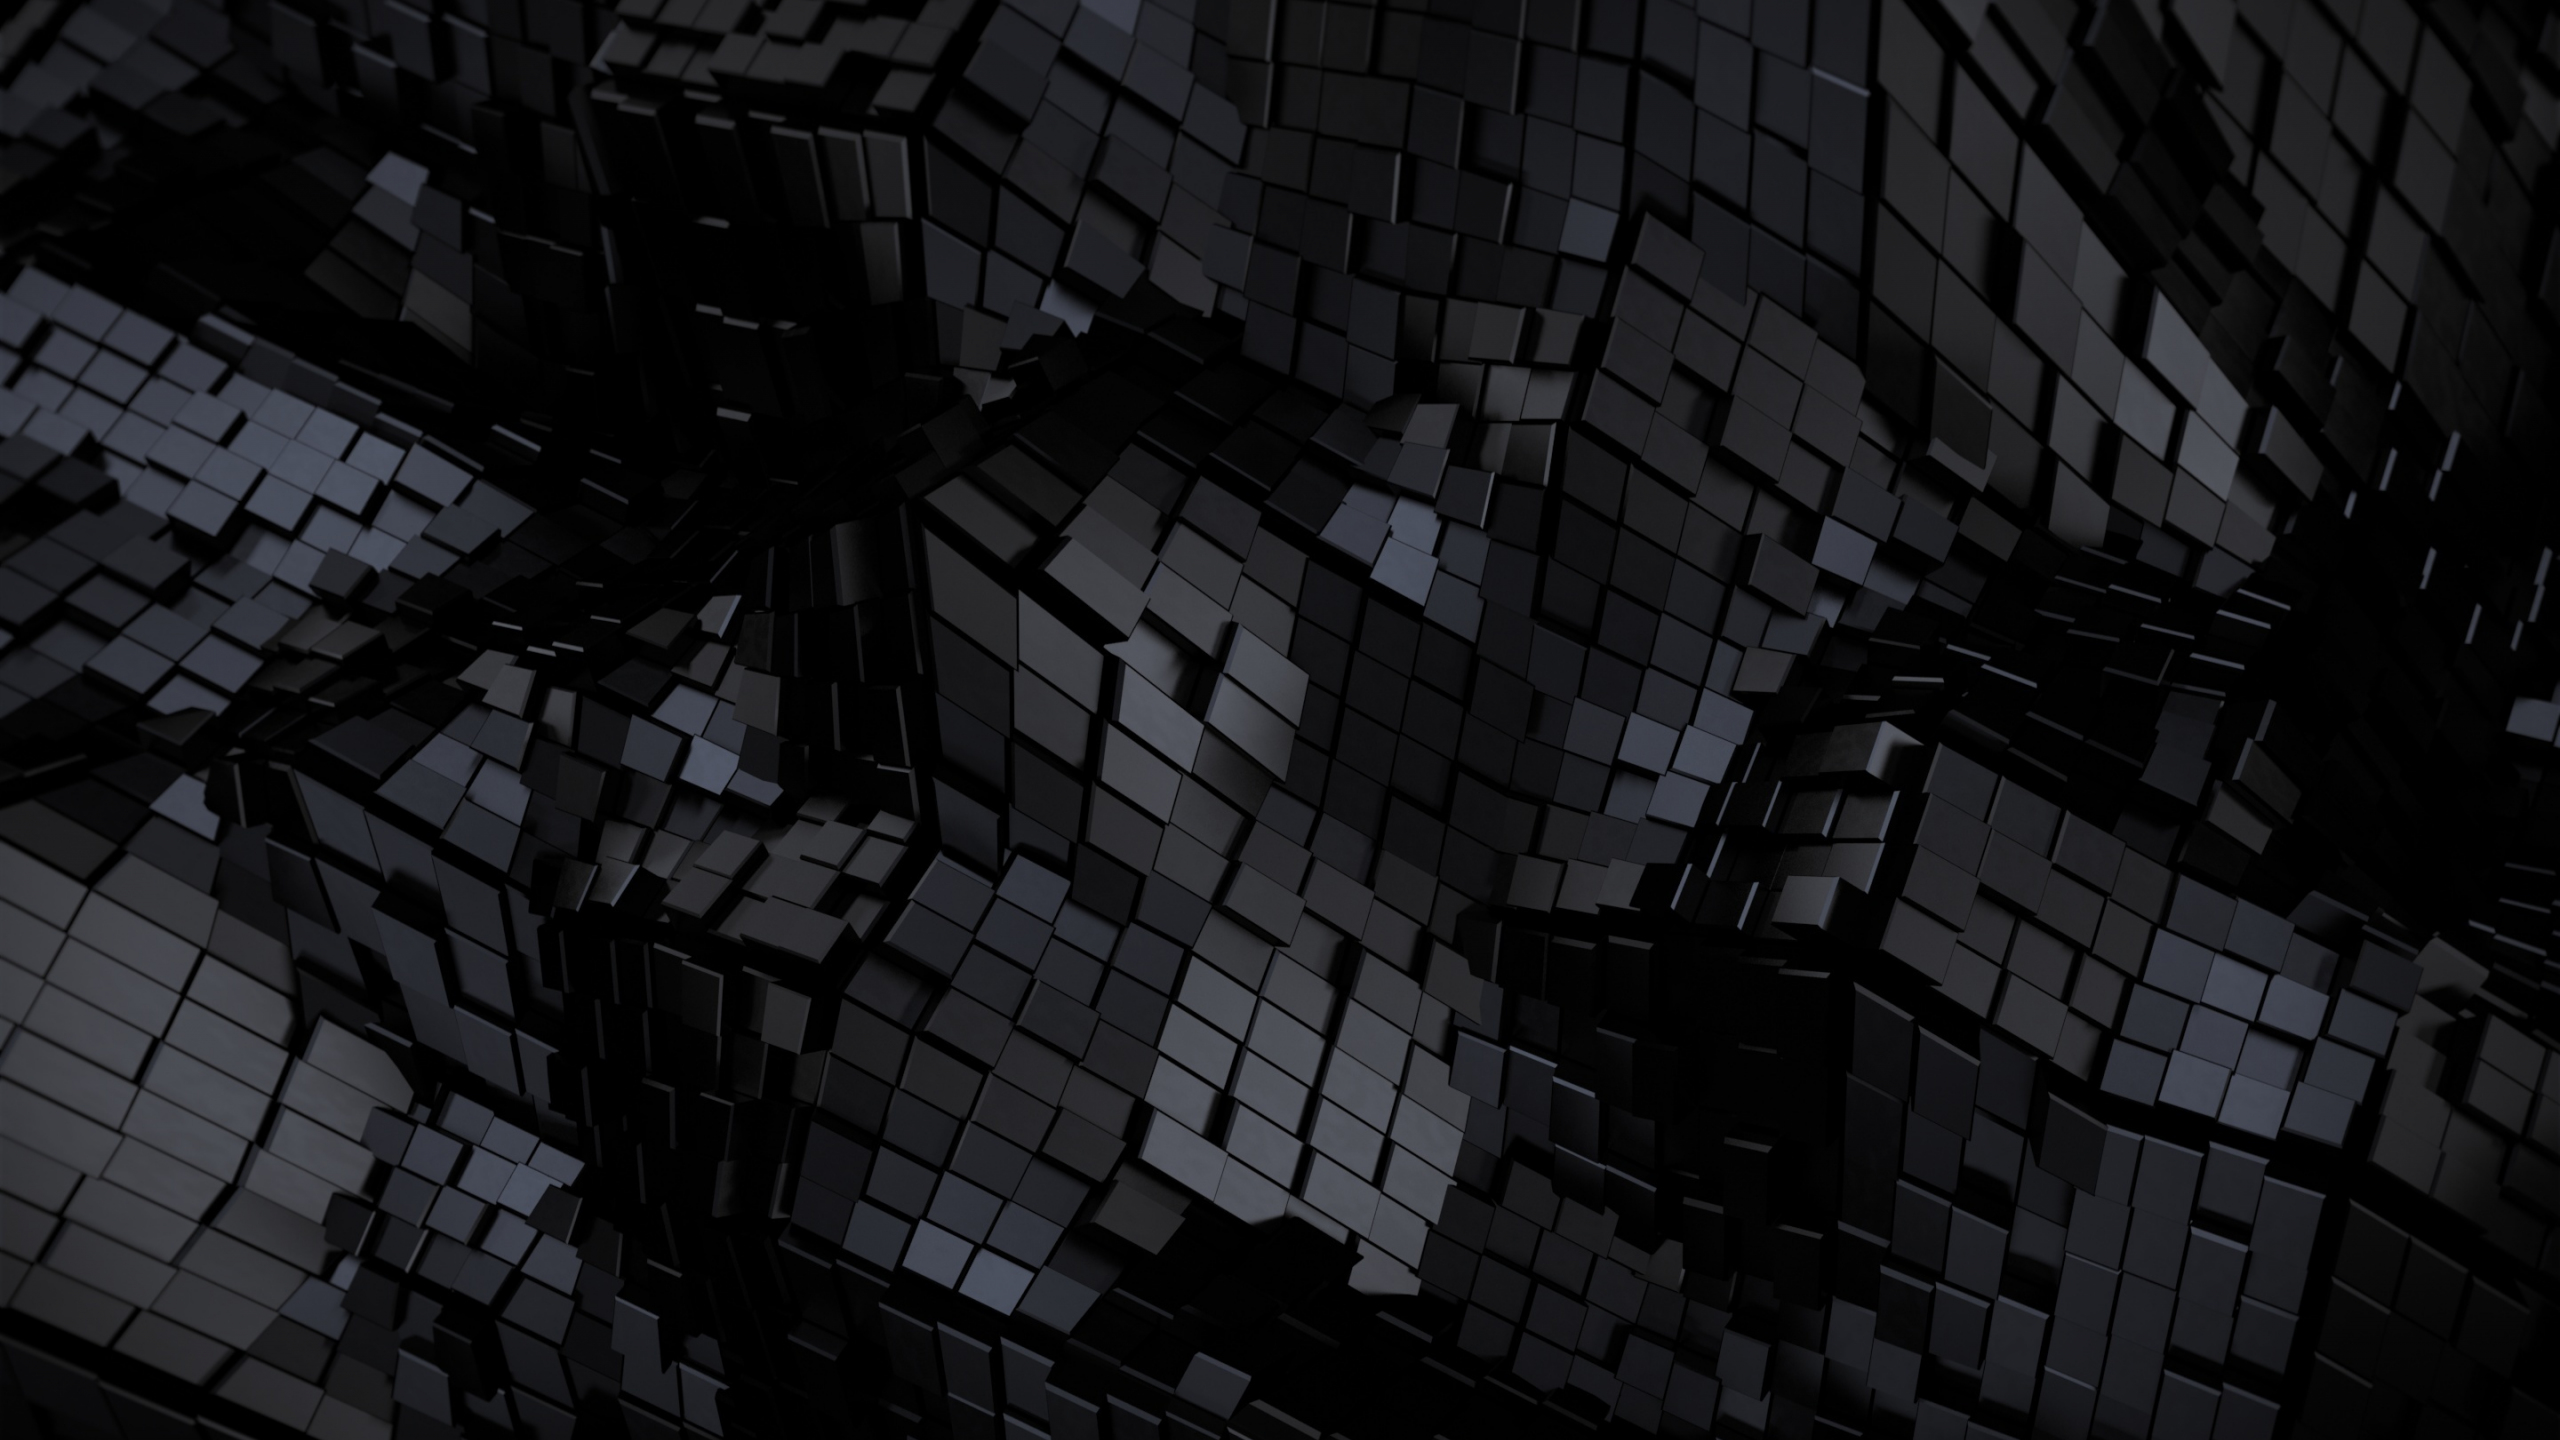 Download 2560x1440 Wallpaper Tiles Black Grid Abstract